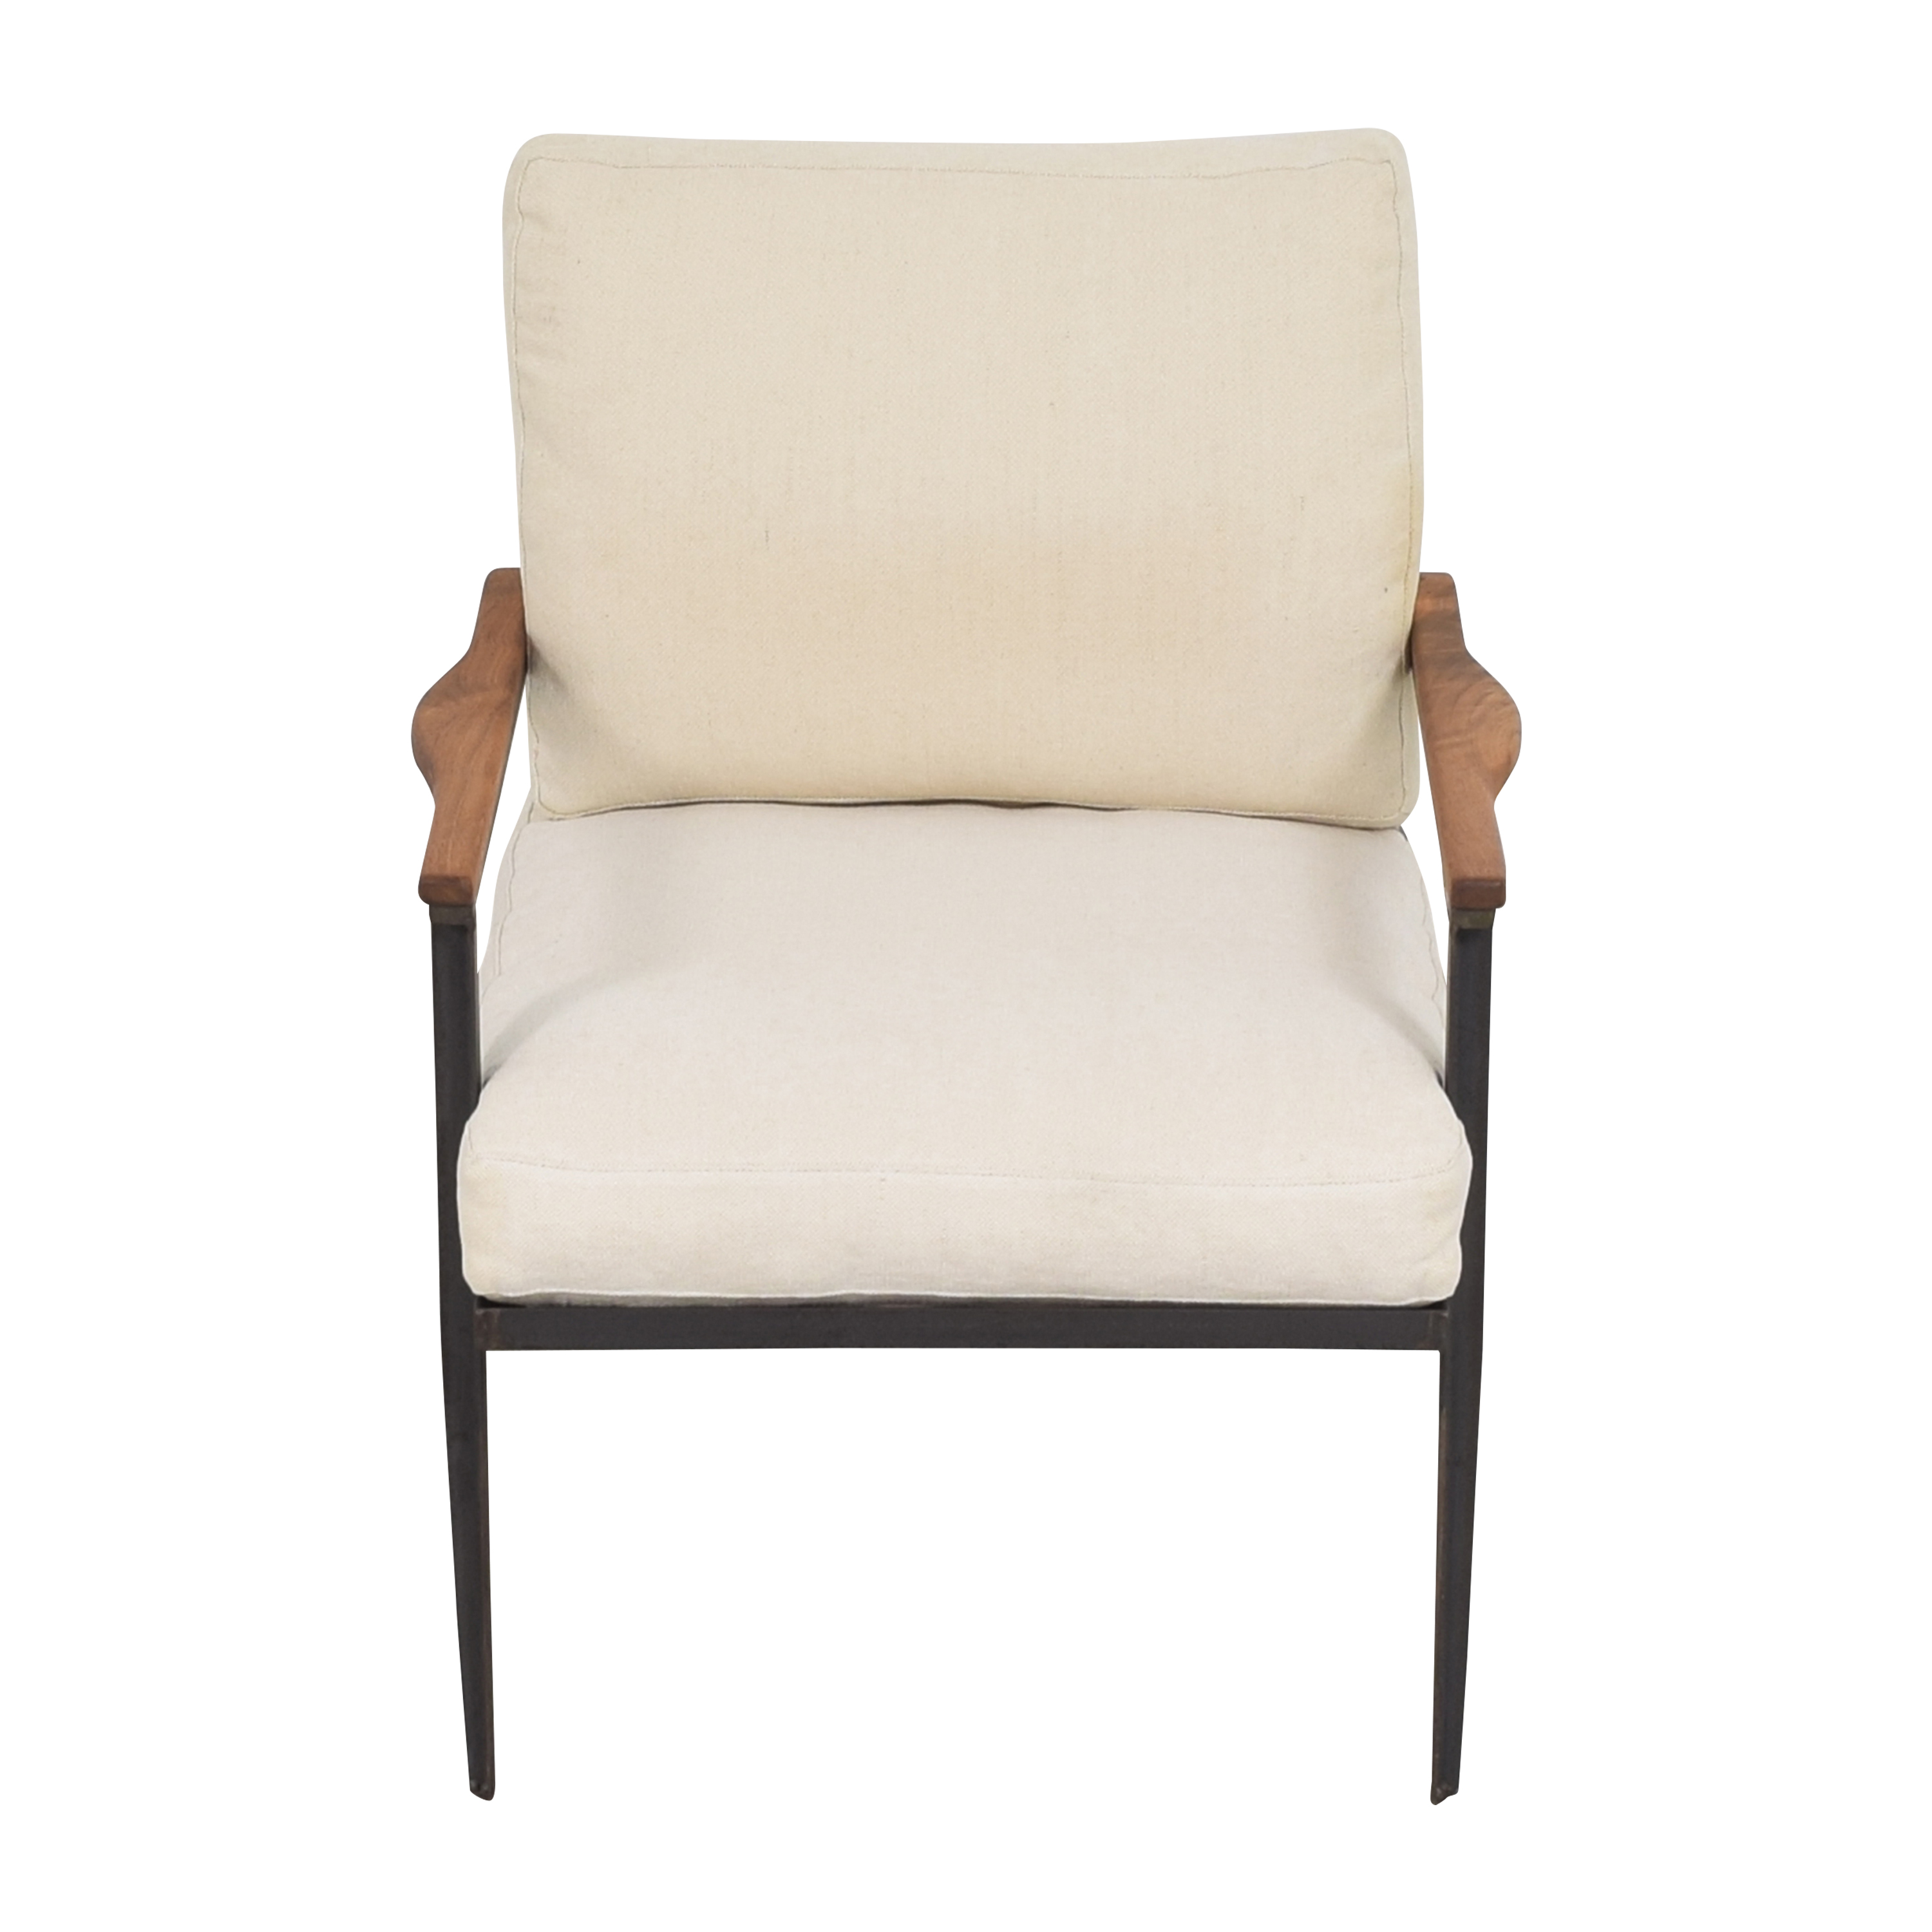 Cisco Brothers Cisco Brothers Alcott Chair coupon